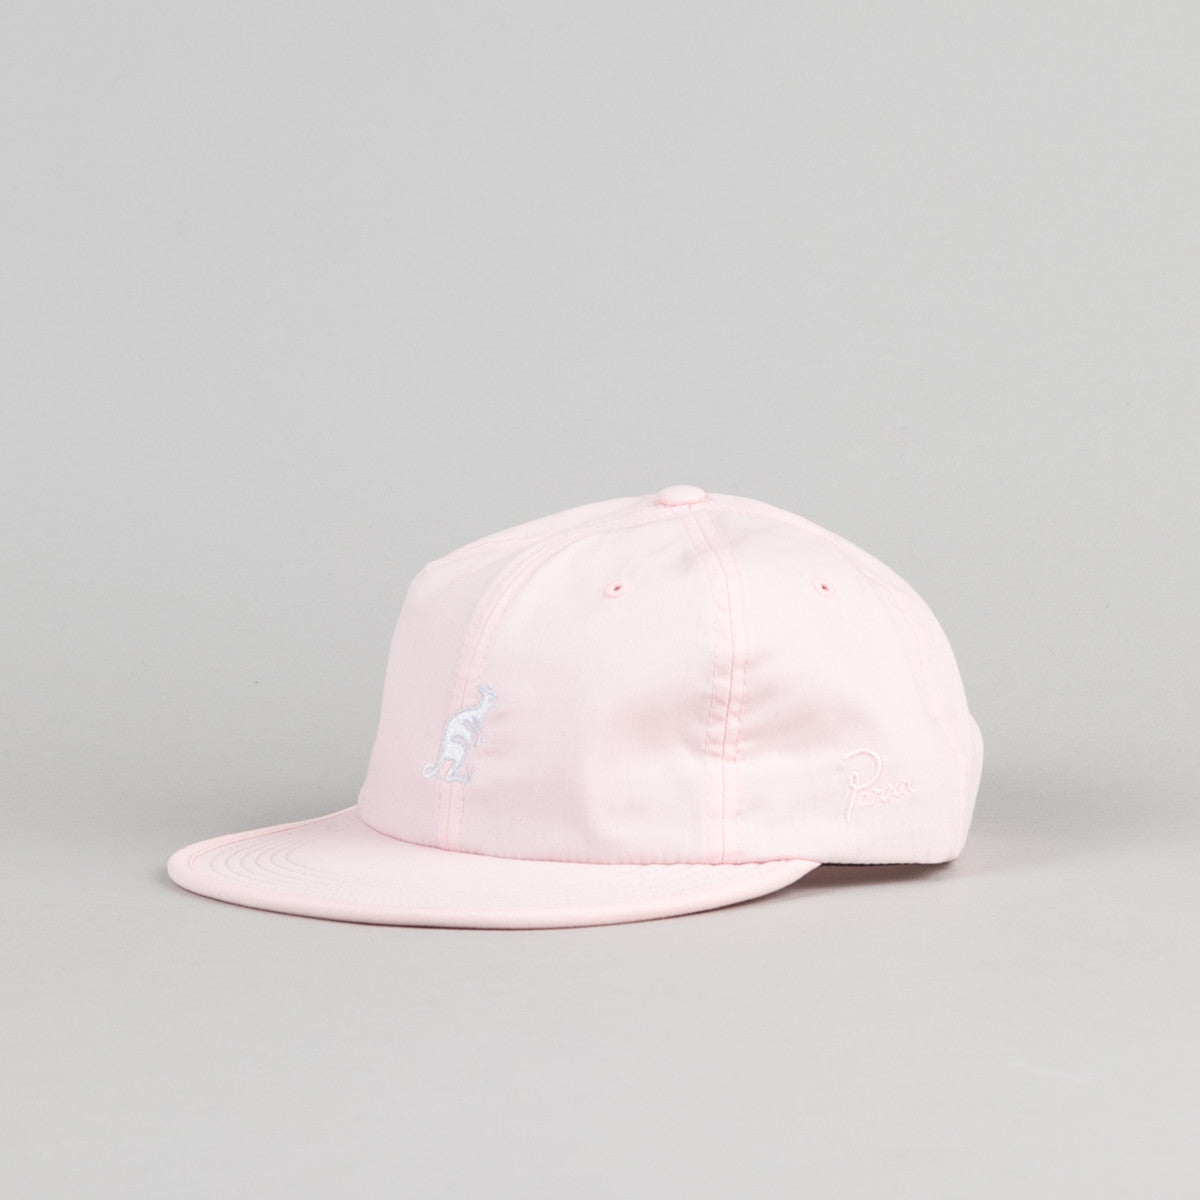 Parra 5 Panel Flex Foam Visor - Light Pink